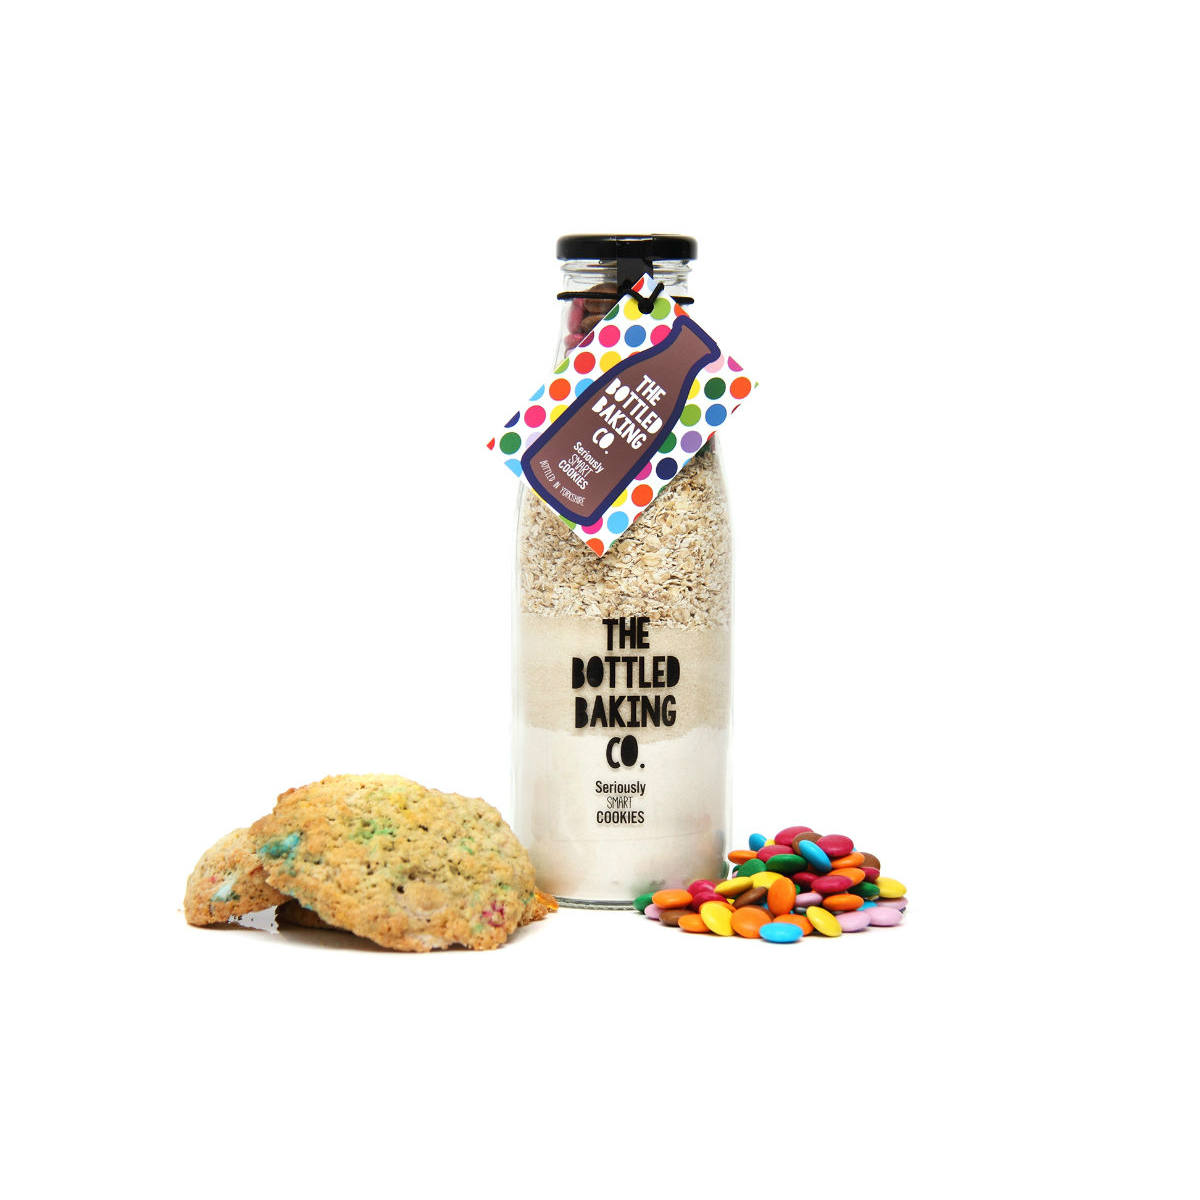 The Bottled Baking Co Seriously Smart Cookies | Restoration Yard